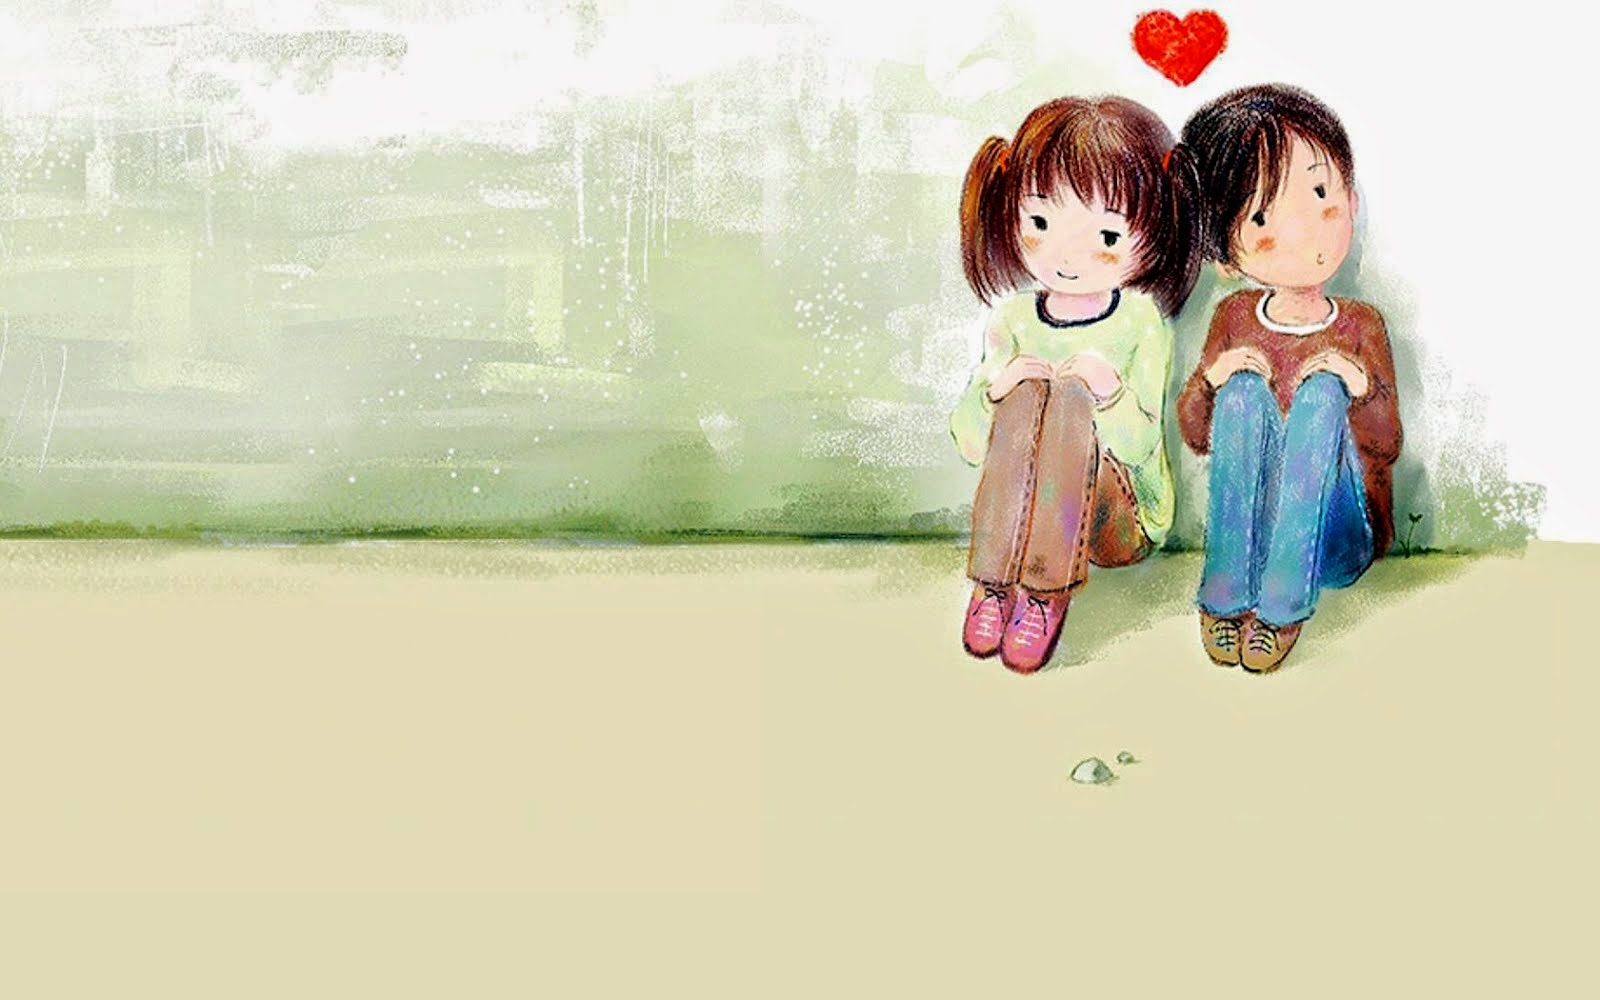 Love Baby couple Wallpaper Hd : cute Little cartoon couple In Love HD Wallpaper Best Love HD Wallpapers